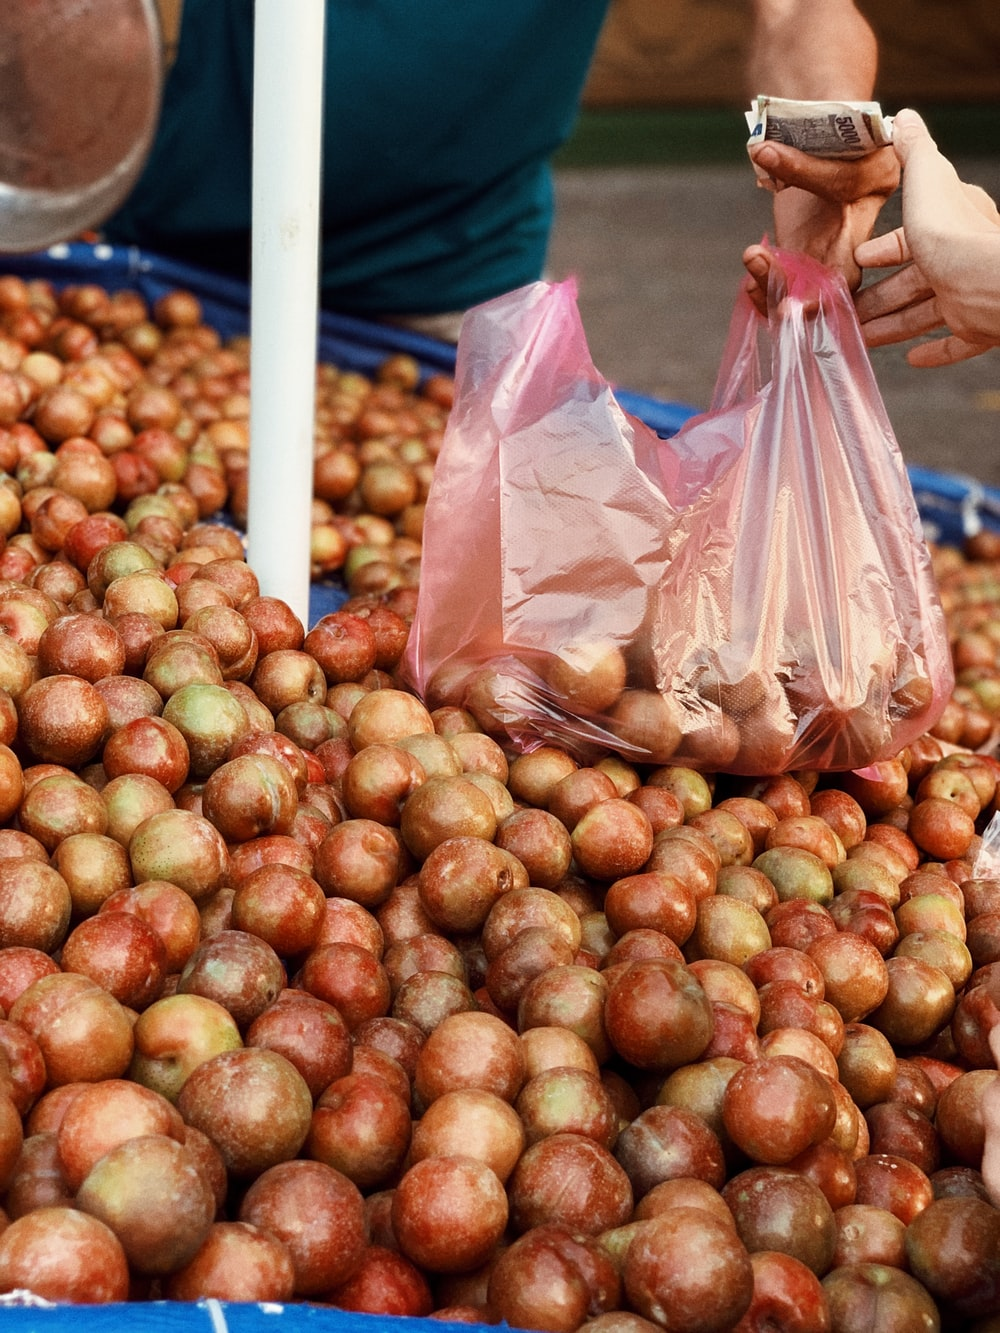 brown round fruits on plastic bags